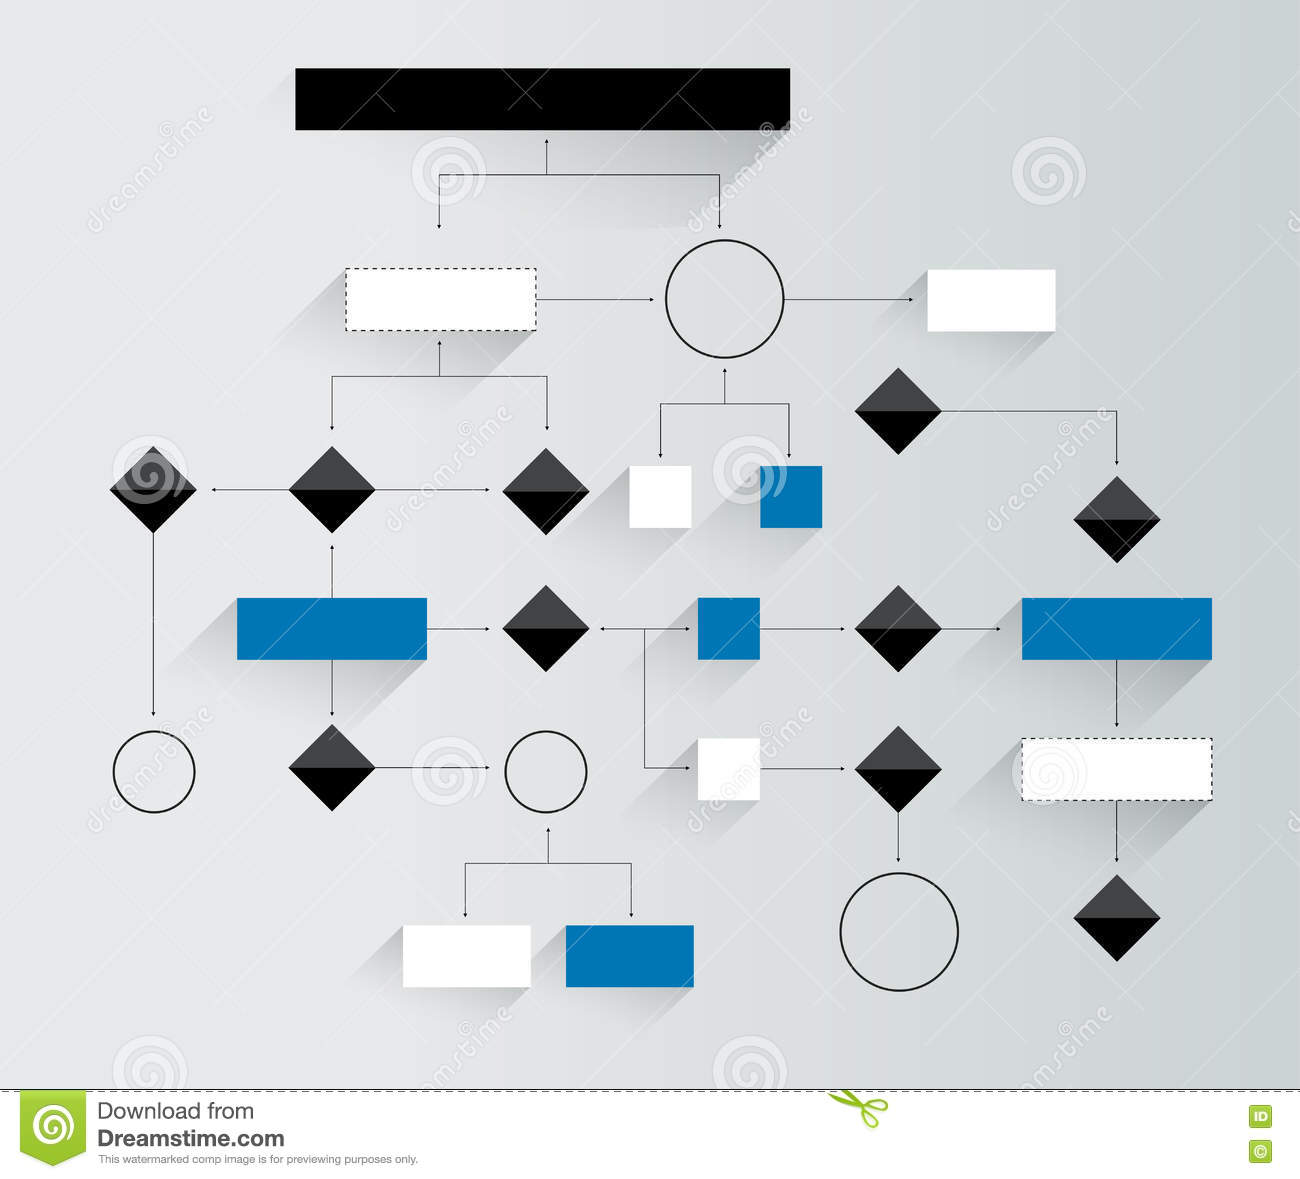 Big flowchart. Geometric scheme. Presentation infographics element without text.